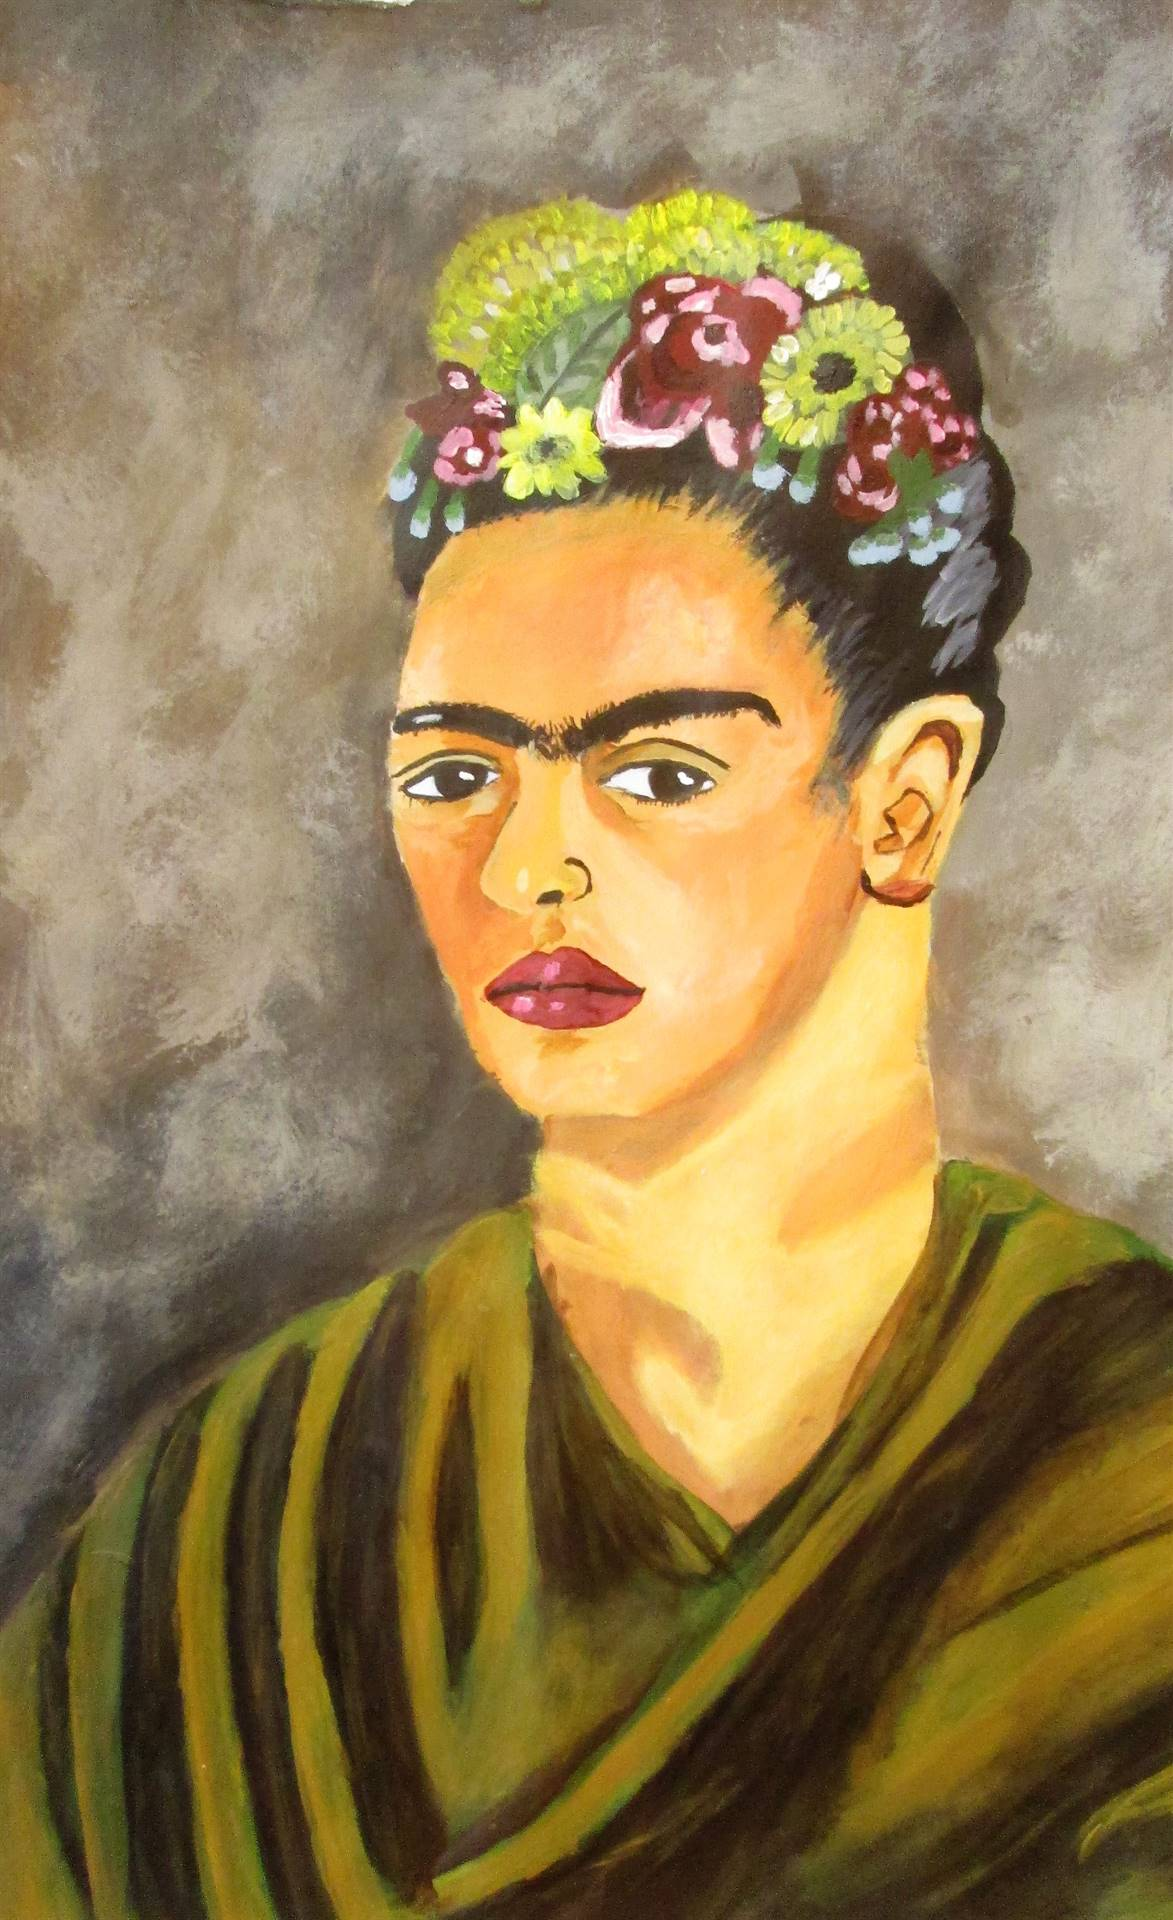 Image of student artwork based on the artist Frida Kahlo.